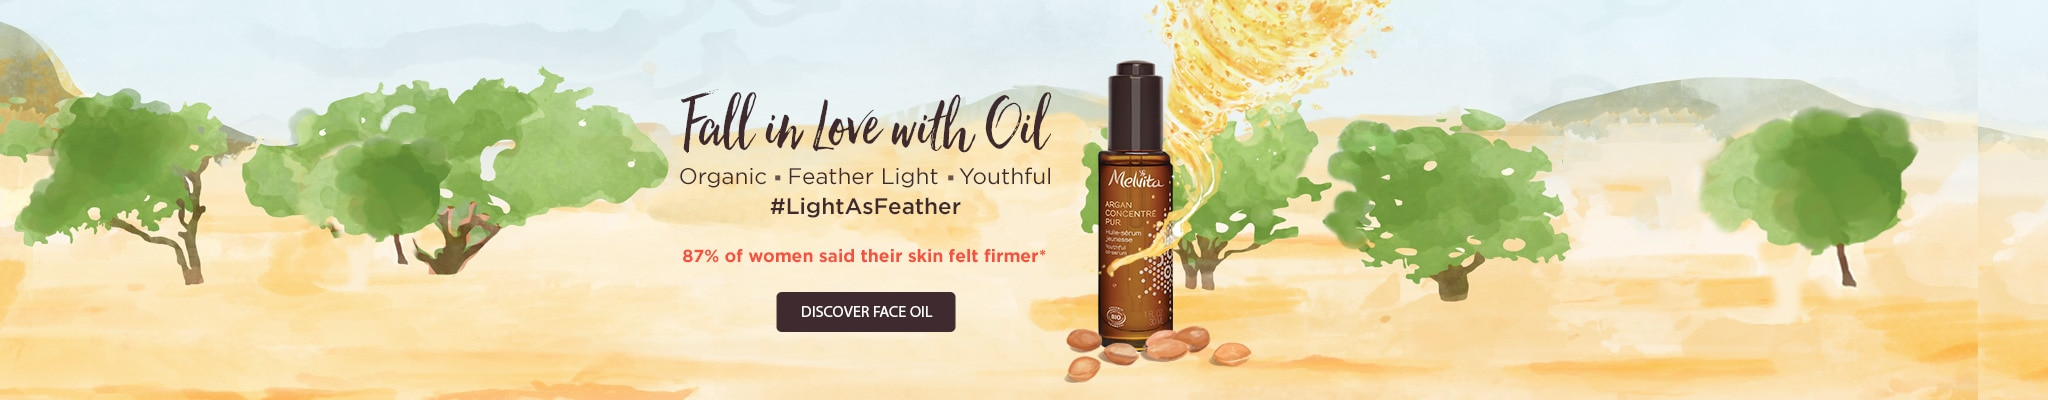 Youthful Oil